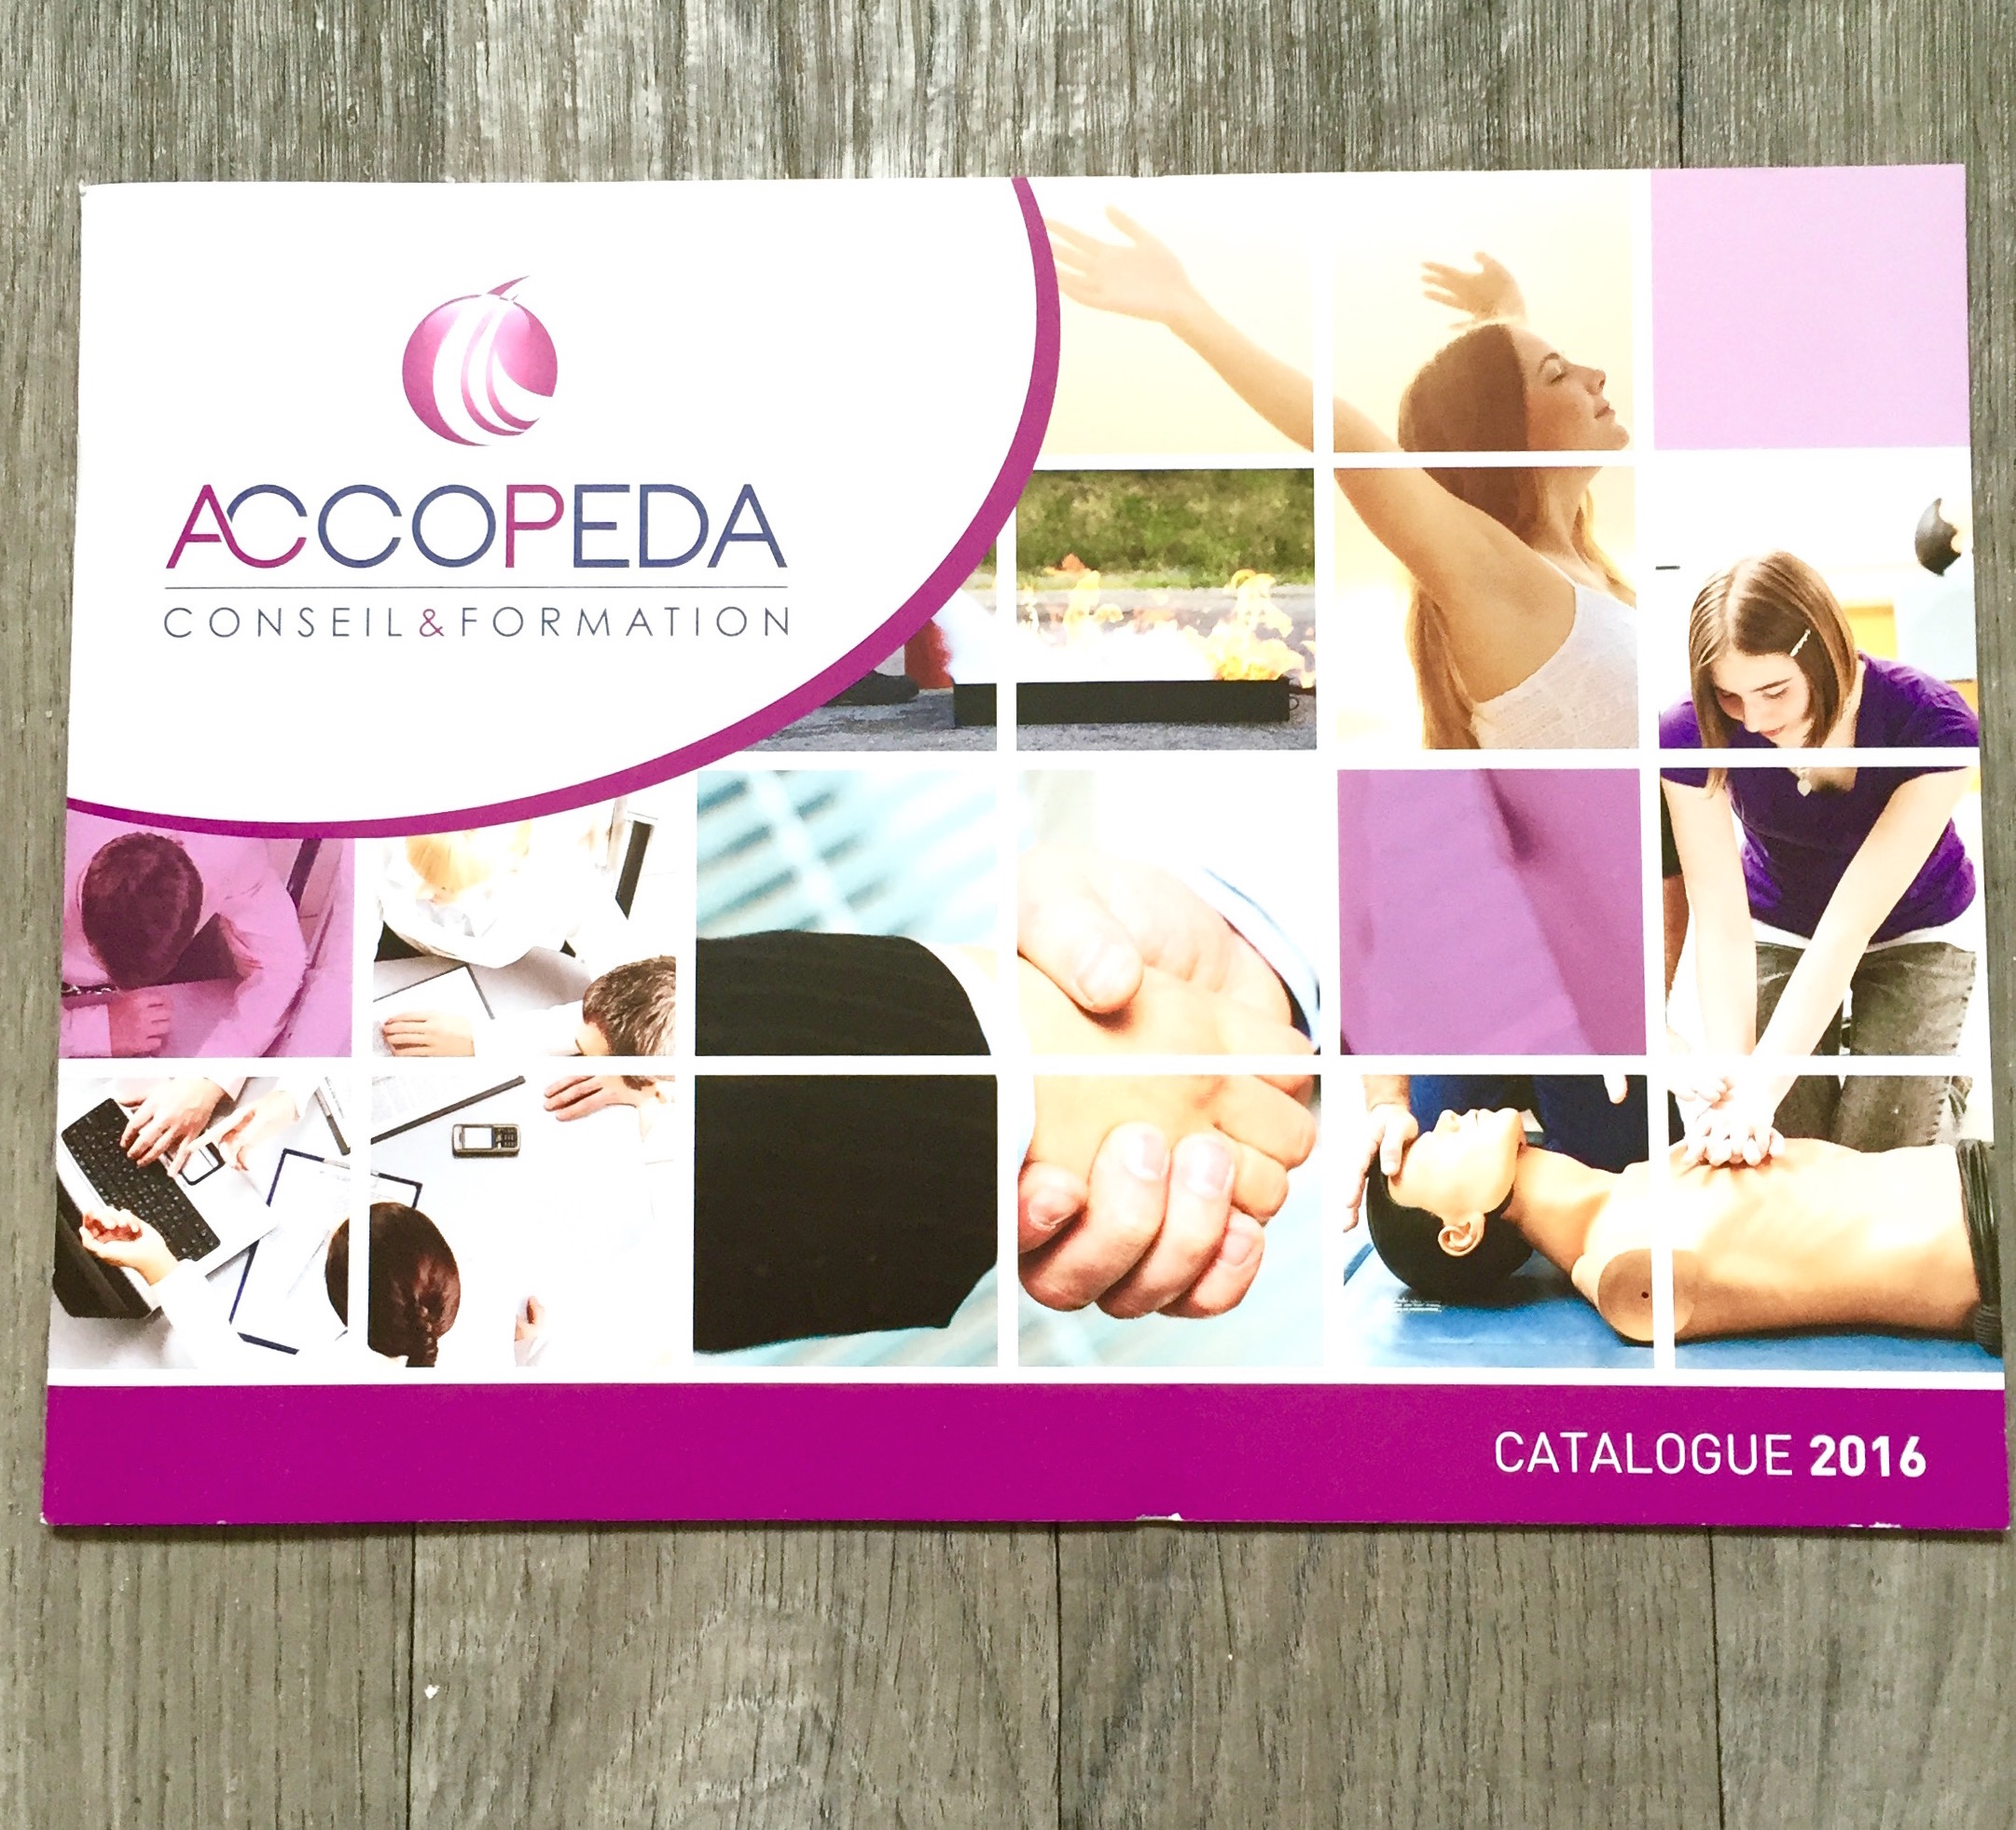 catalogue-accopeda--2.jpg